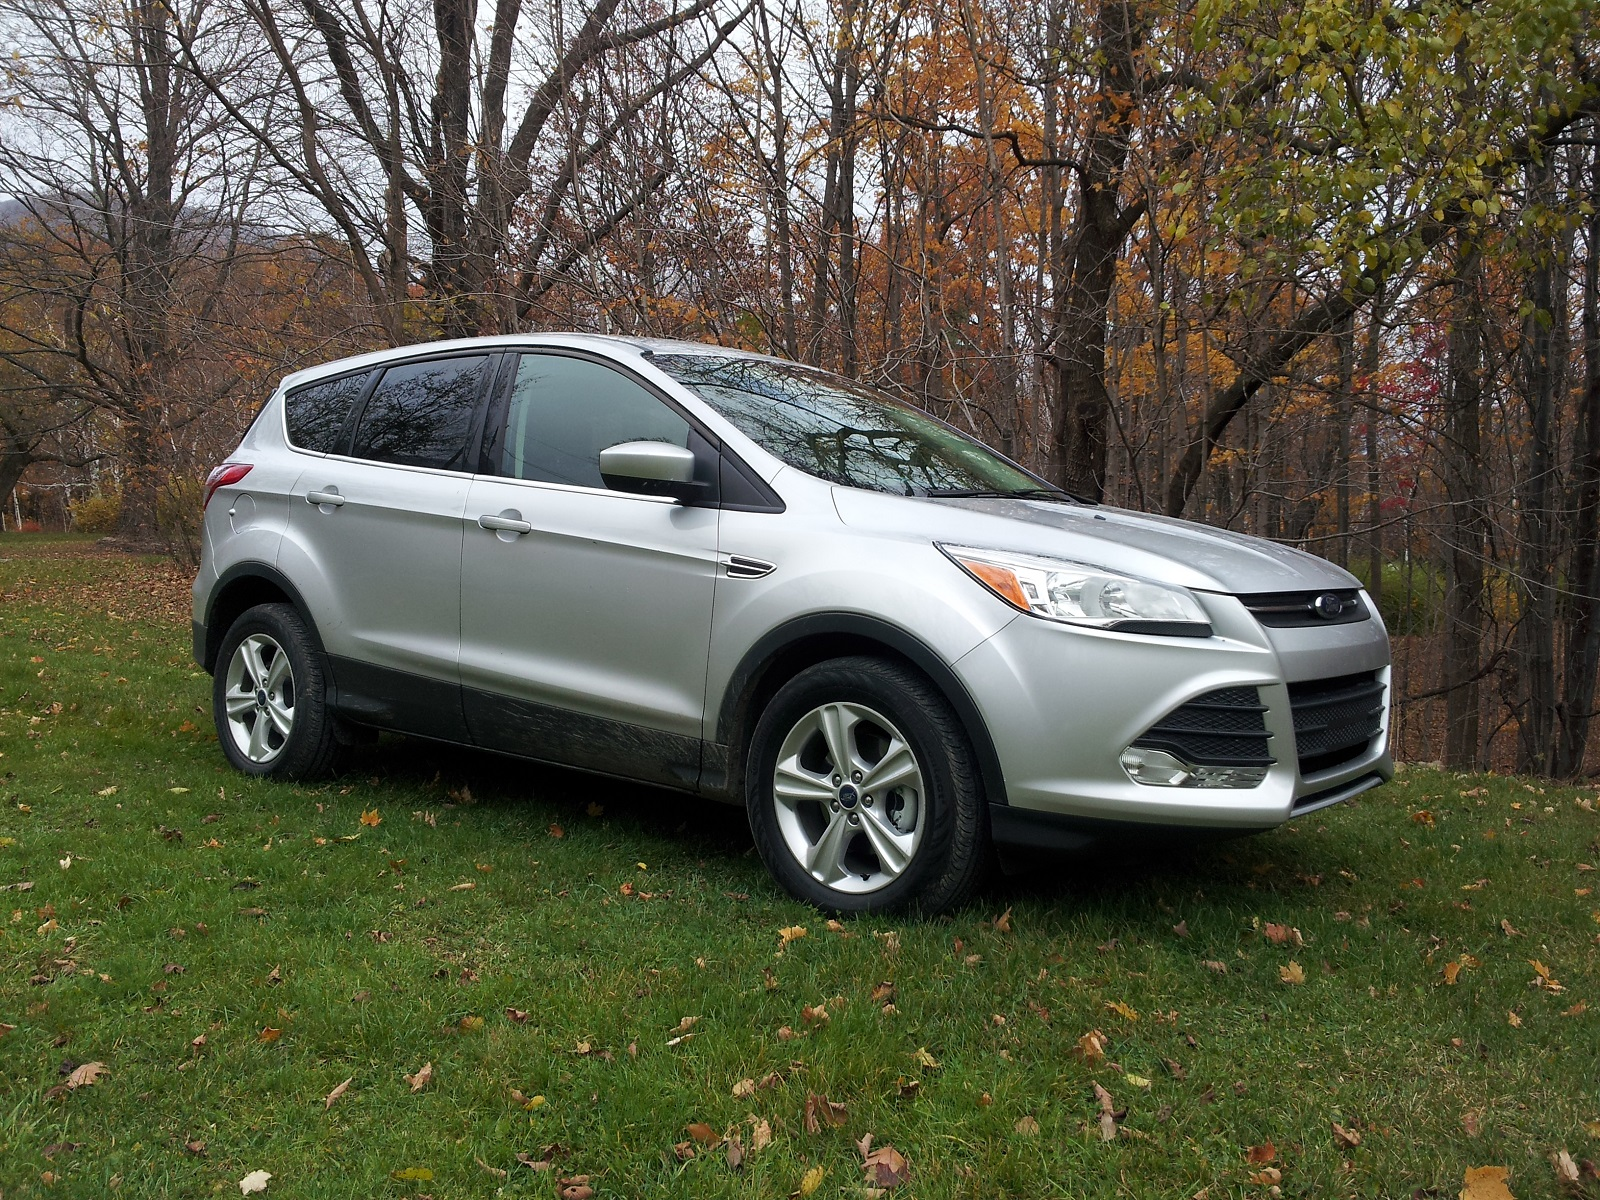 2014 Ford Escape SE 1 6 Liter EcoBoost Gas Mileage Drive Report